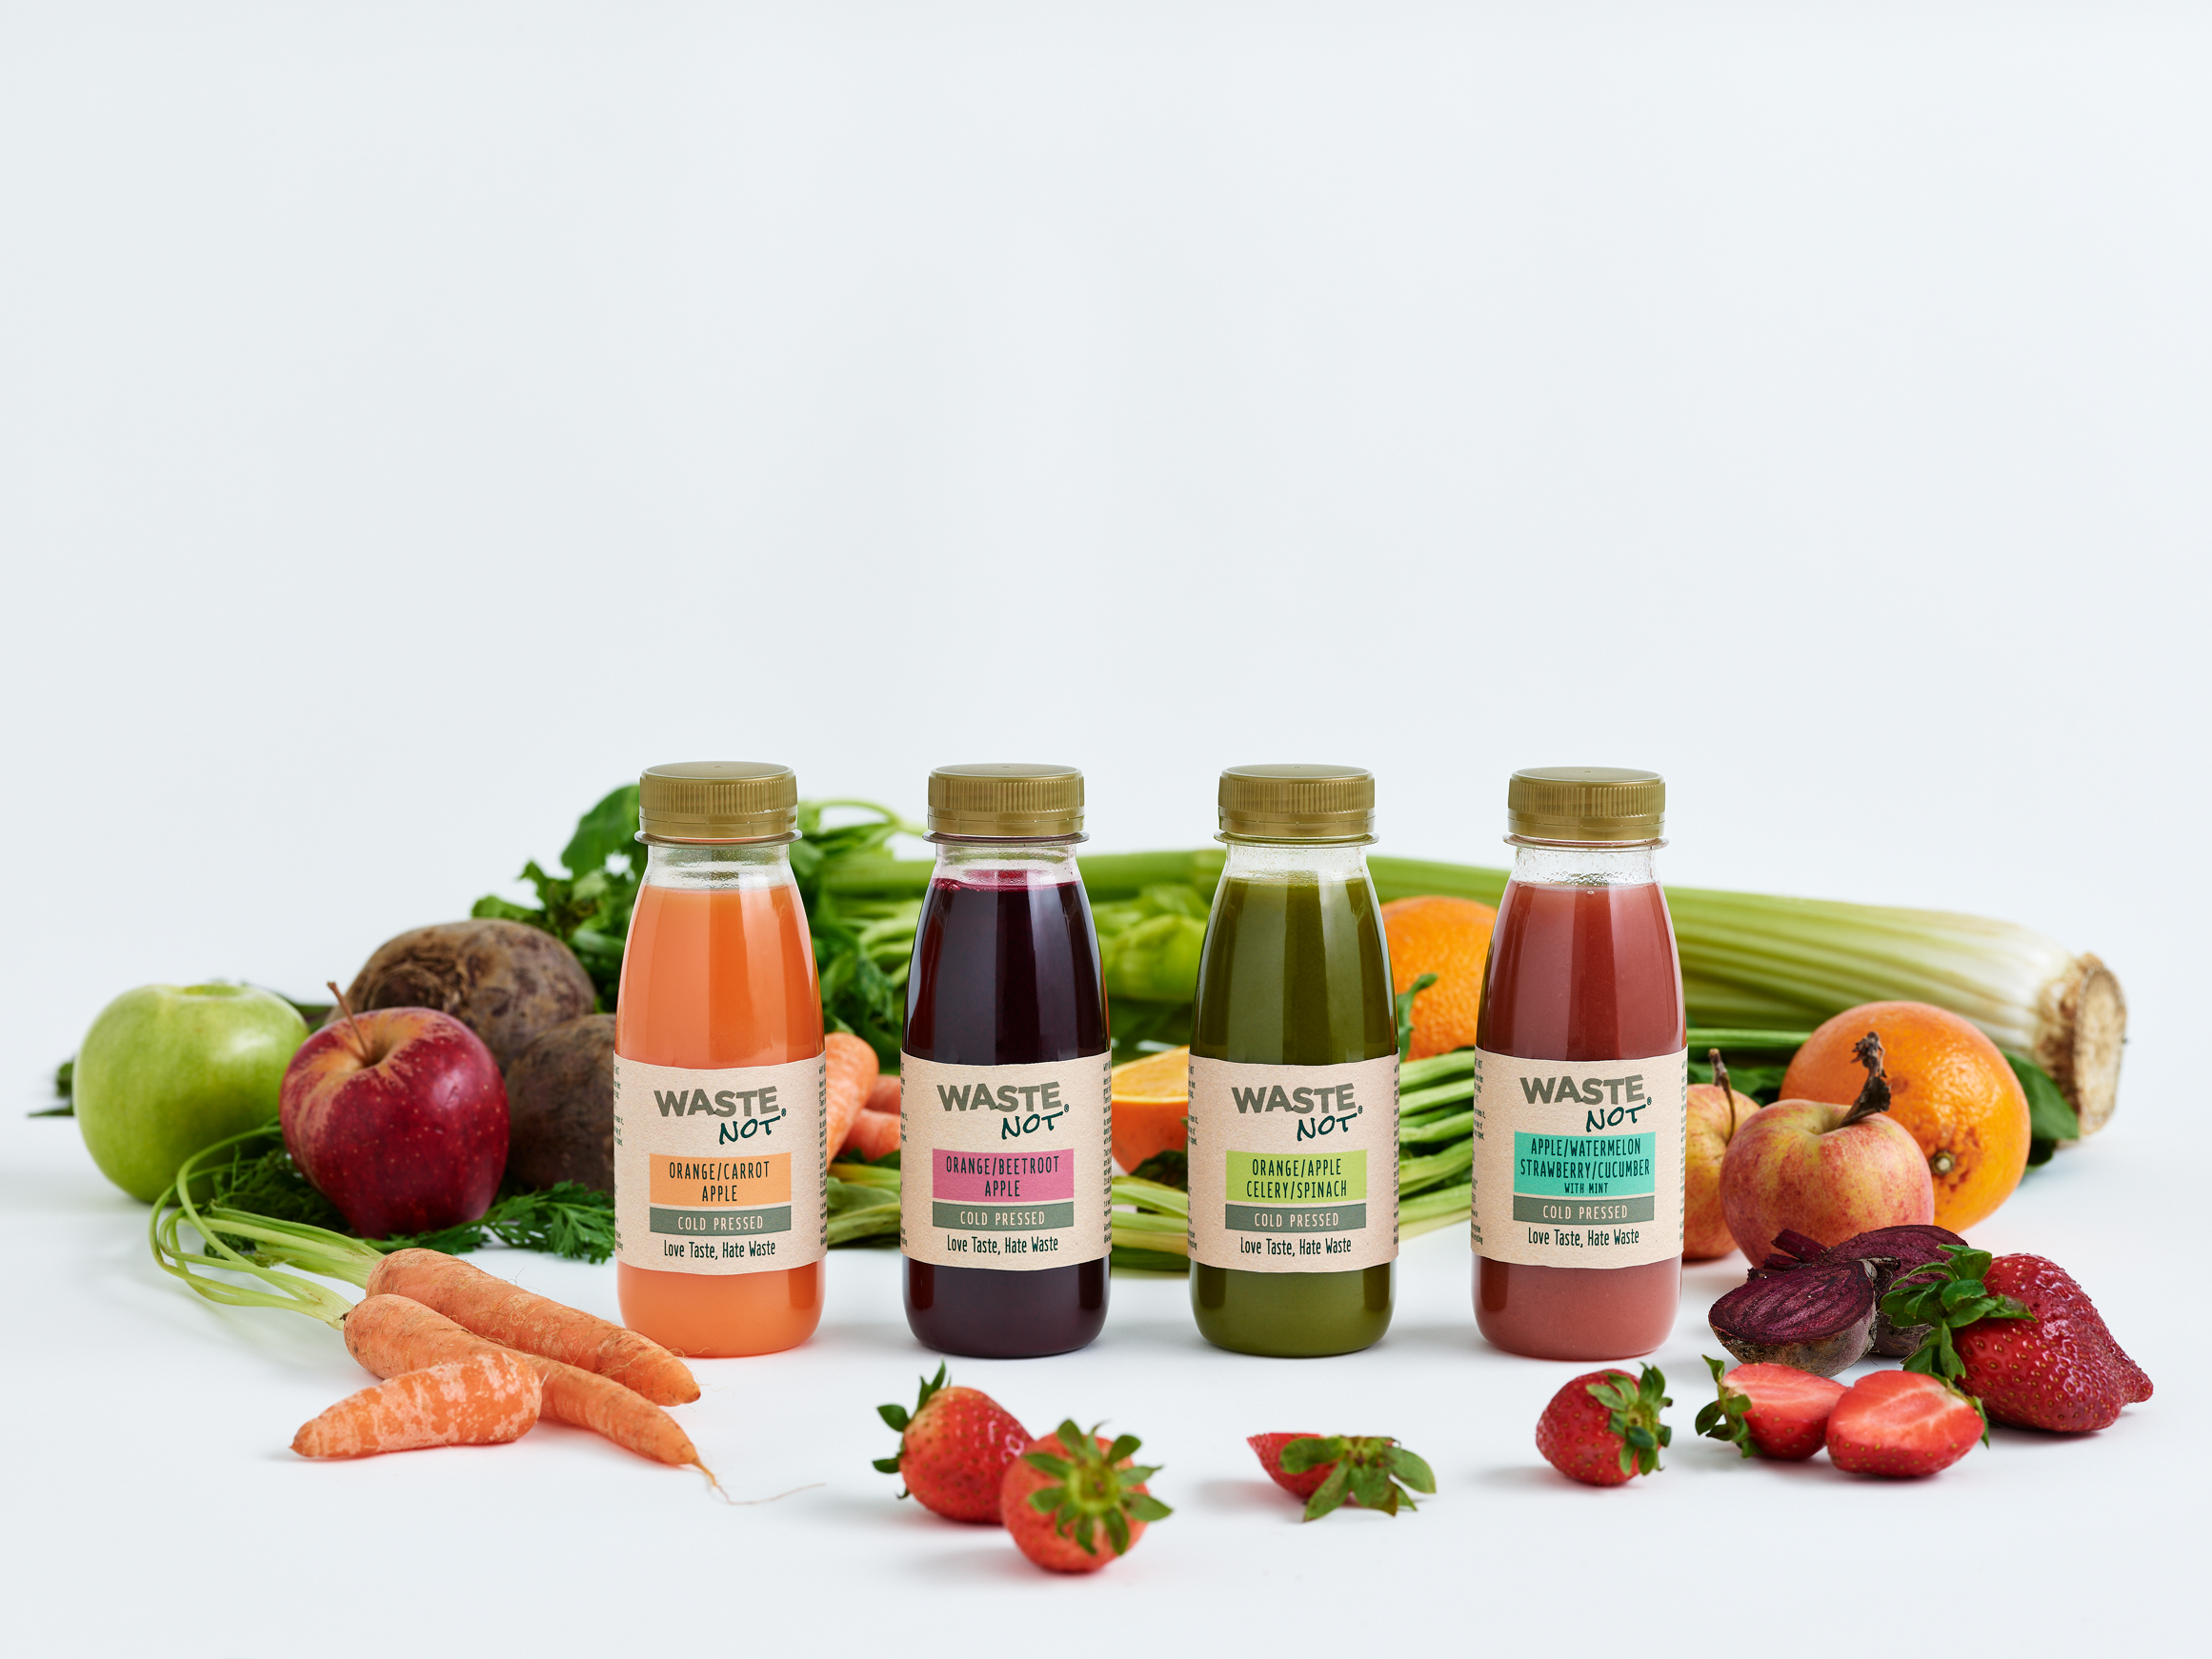 Cold-pressed juices from wonky fruit and veg launch in Tesco